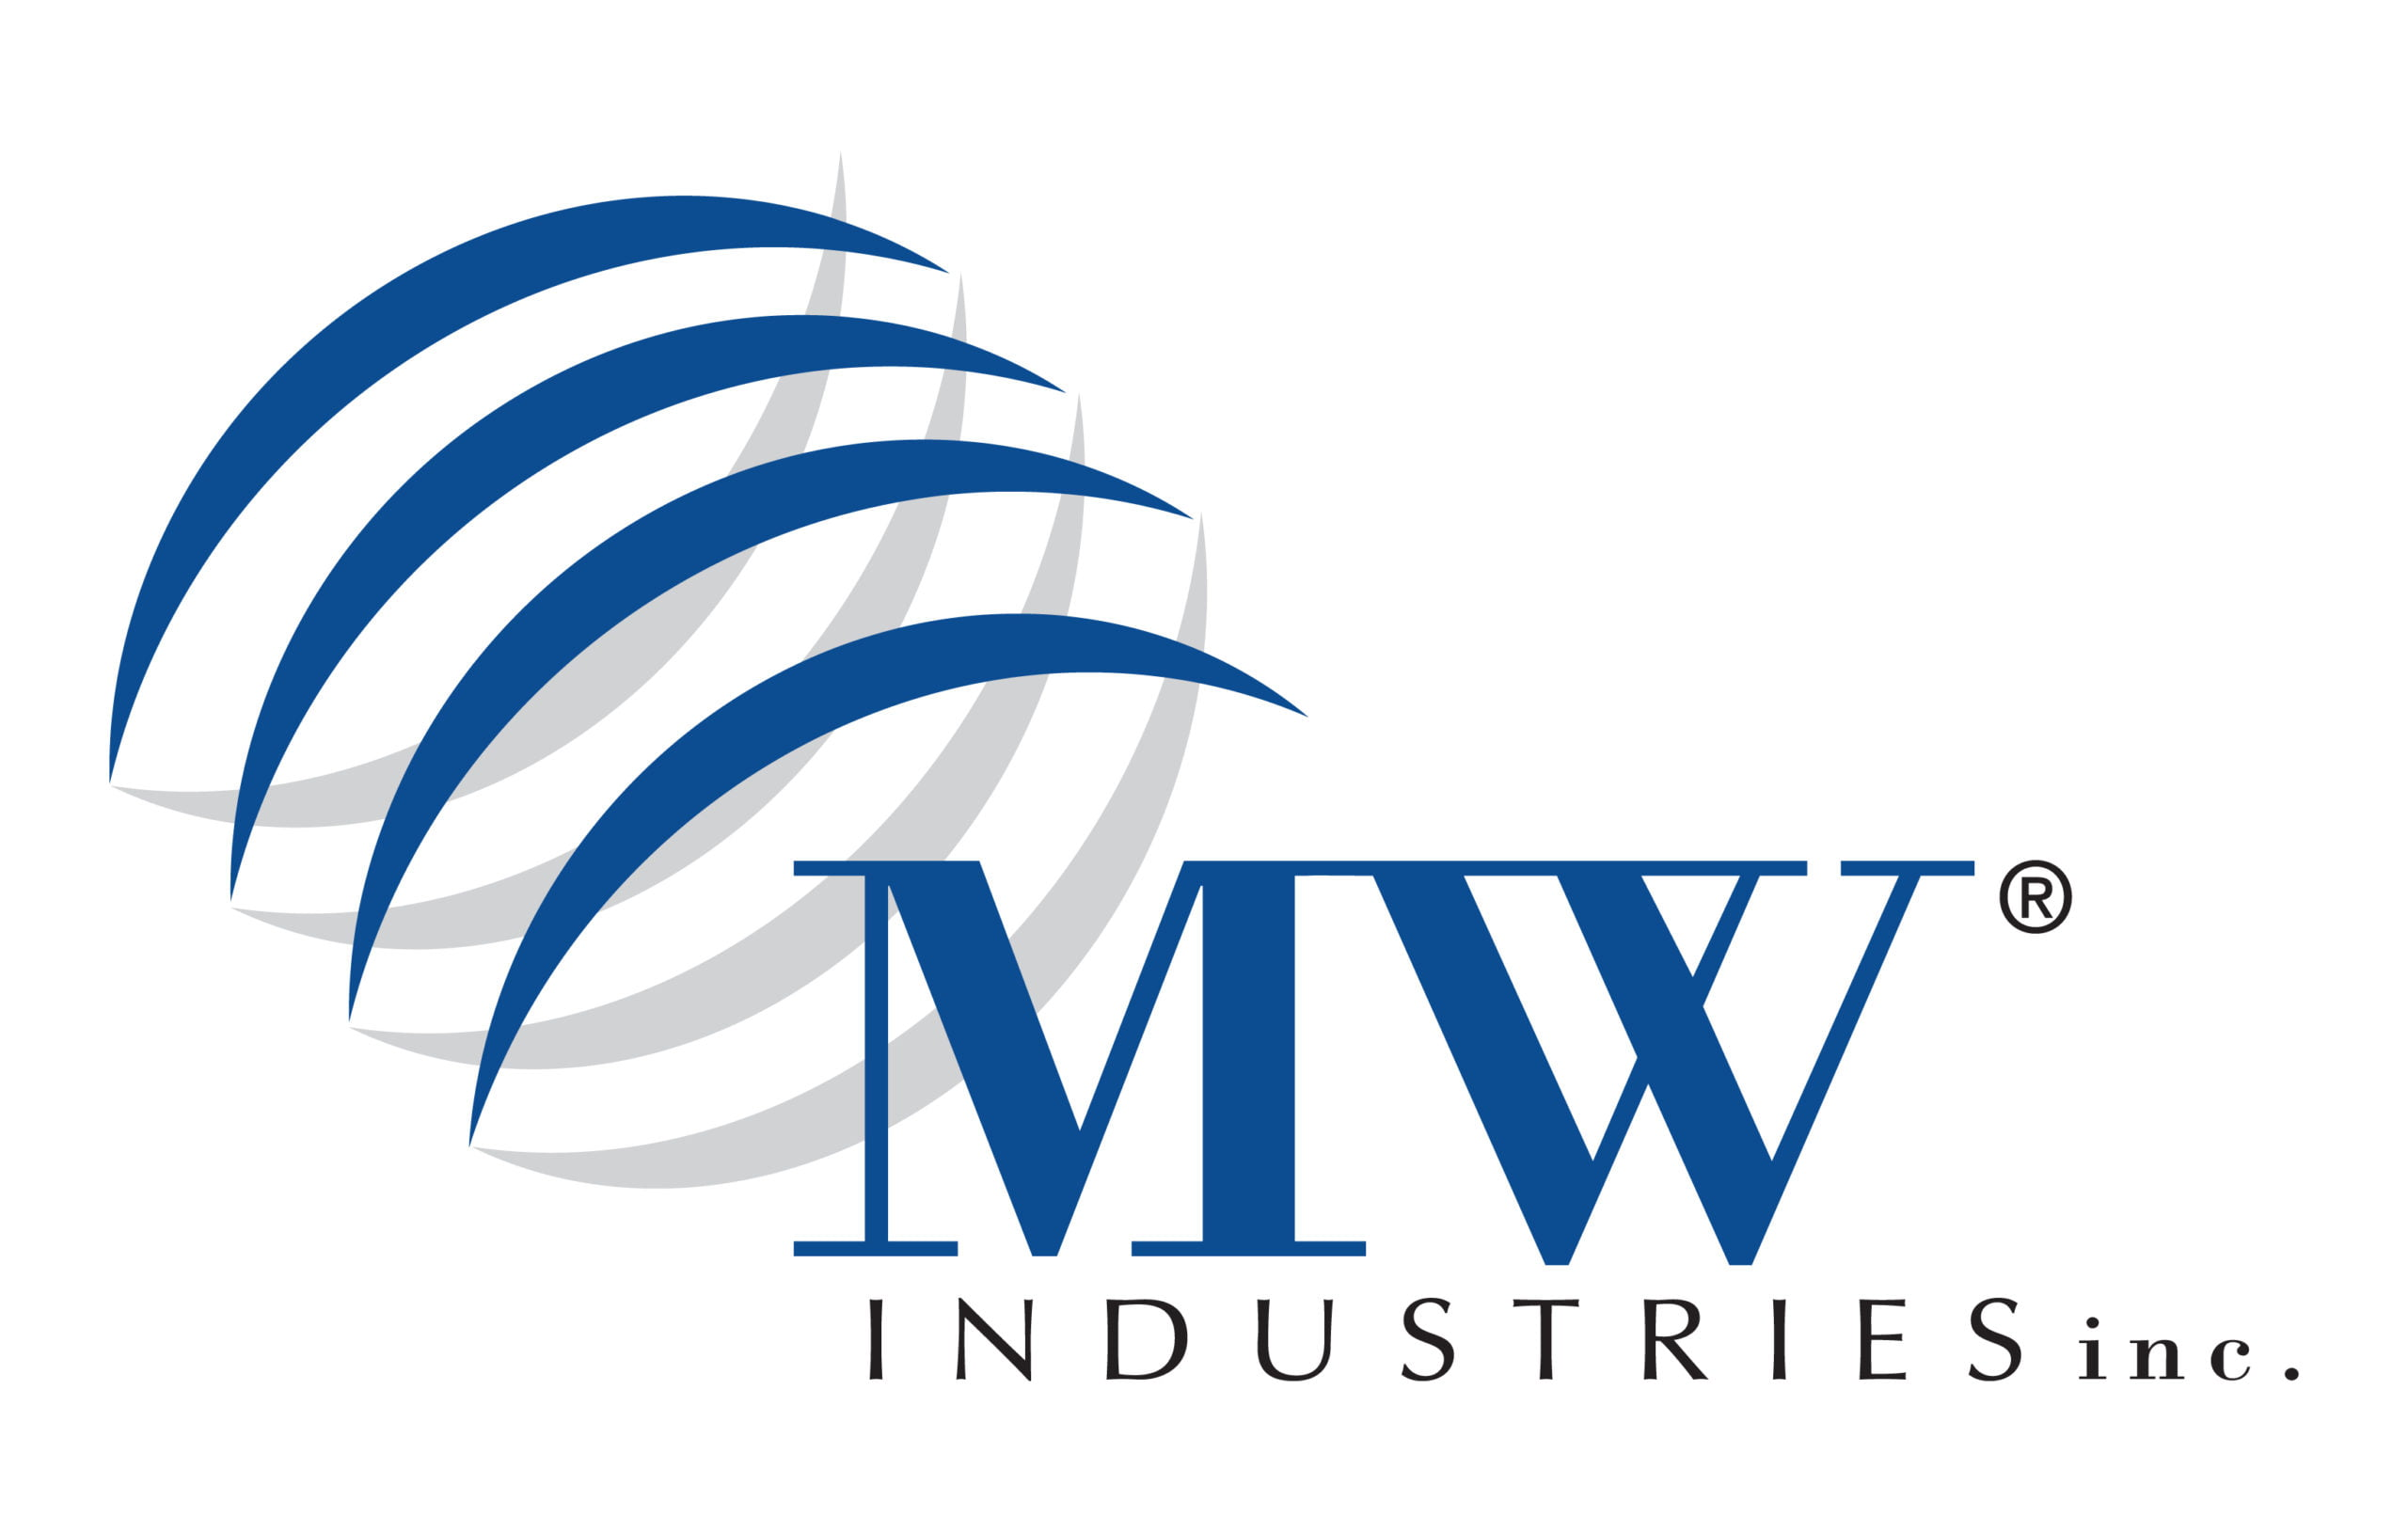 MW Industries to Expand Offering of Engineered Medical Solutions Through Combination With NN, Inc.'s Life Sciences Division